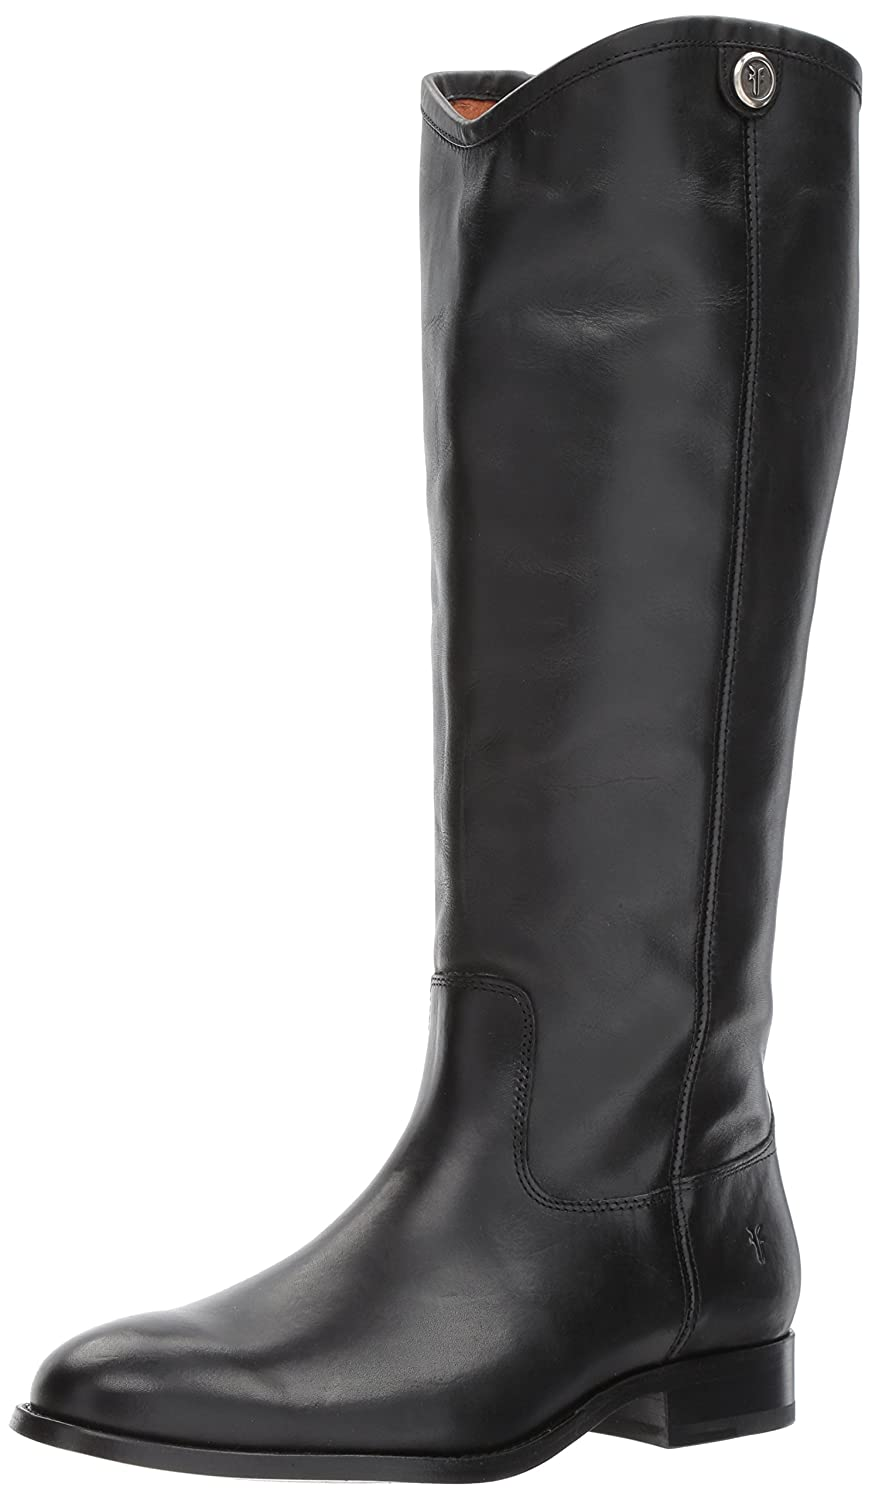 FRYE Women's Melissa Button 2 Extended Calf Riding Boot B06VSJVVDH 6.5 B(M) US|Black Extended Calf